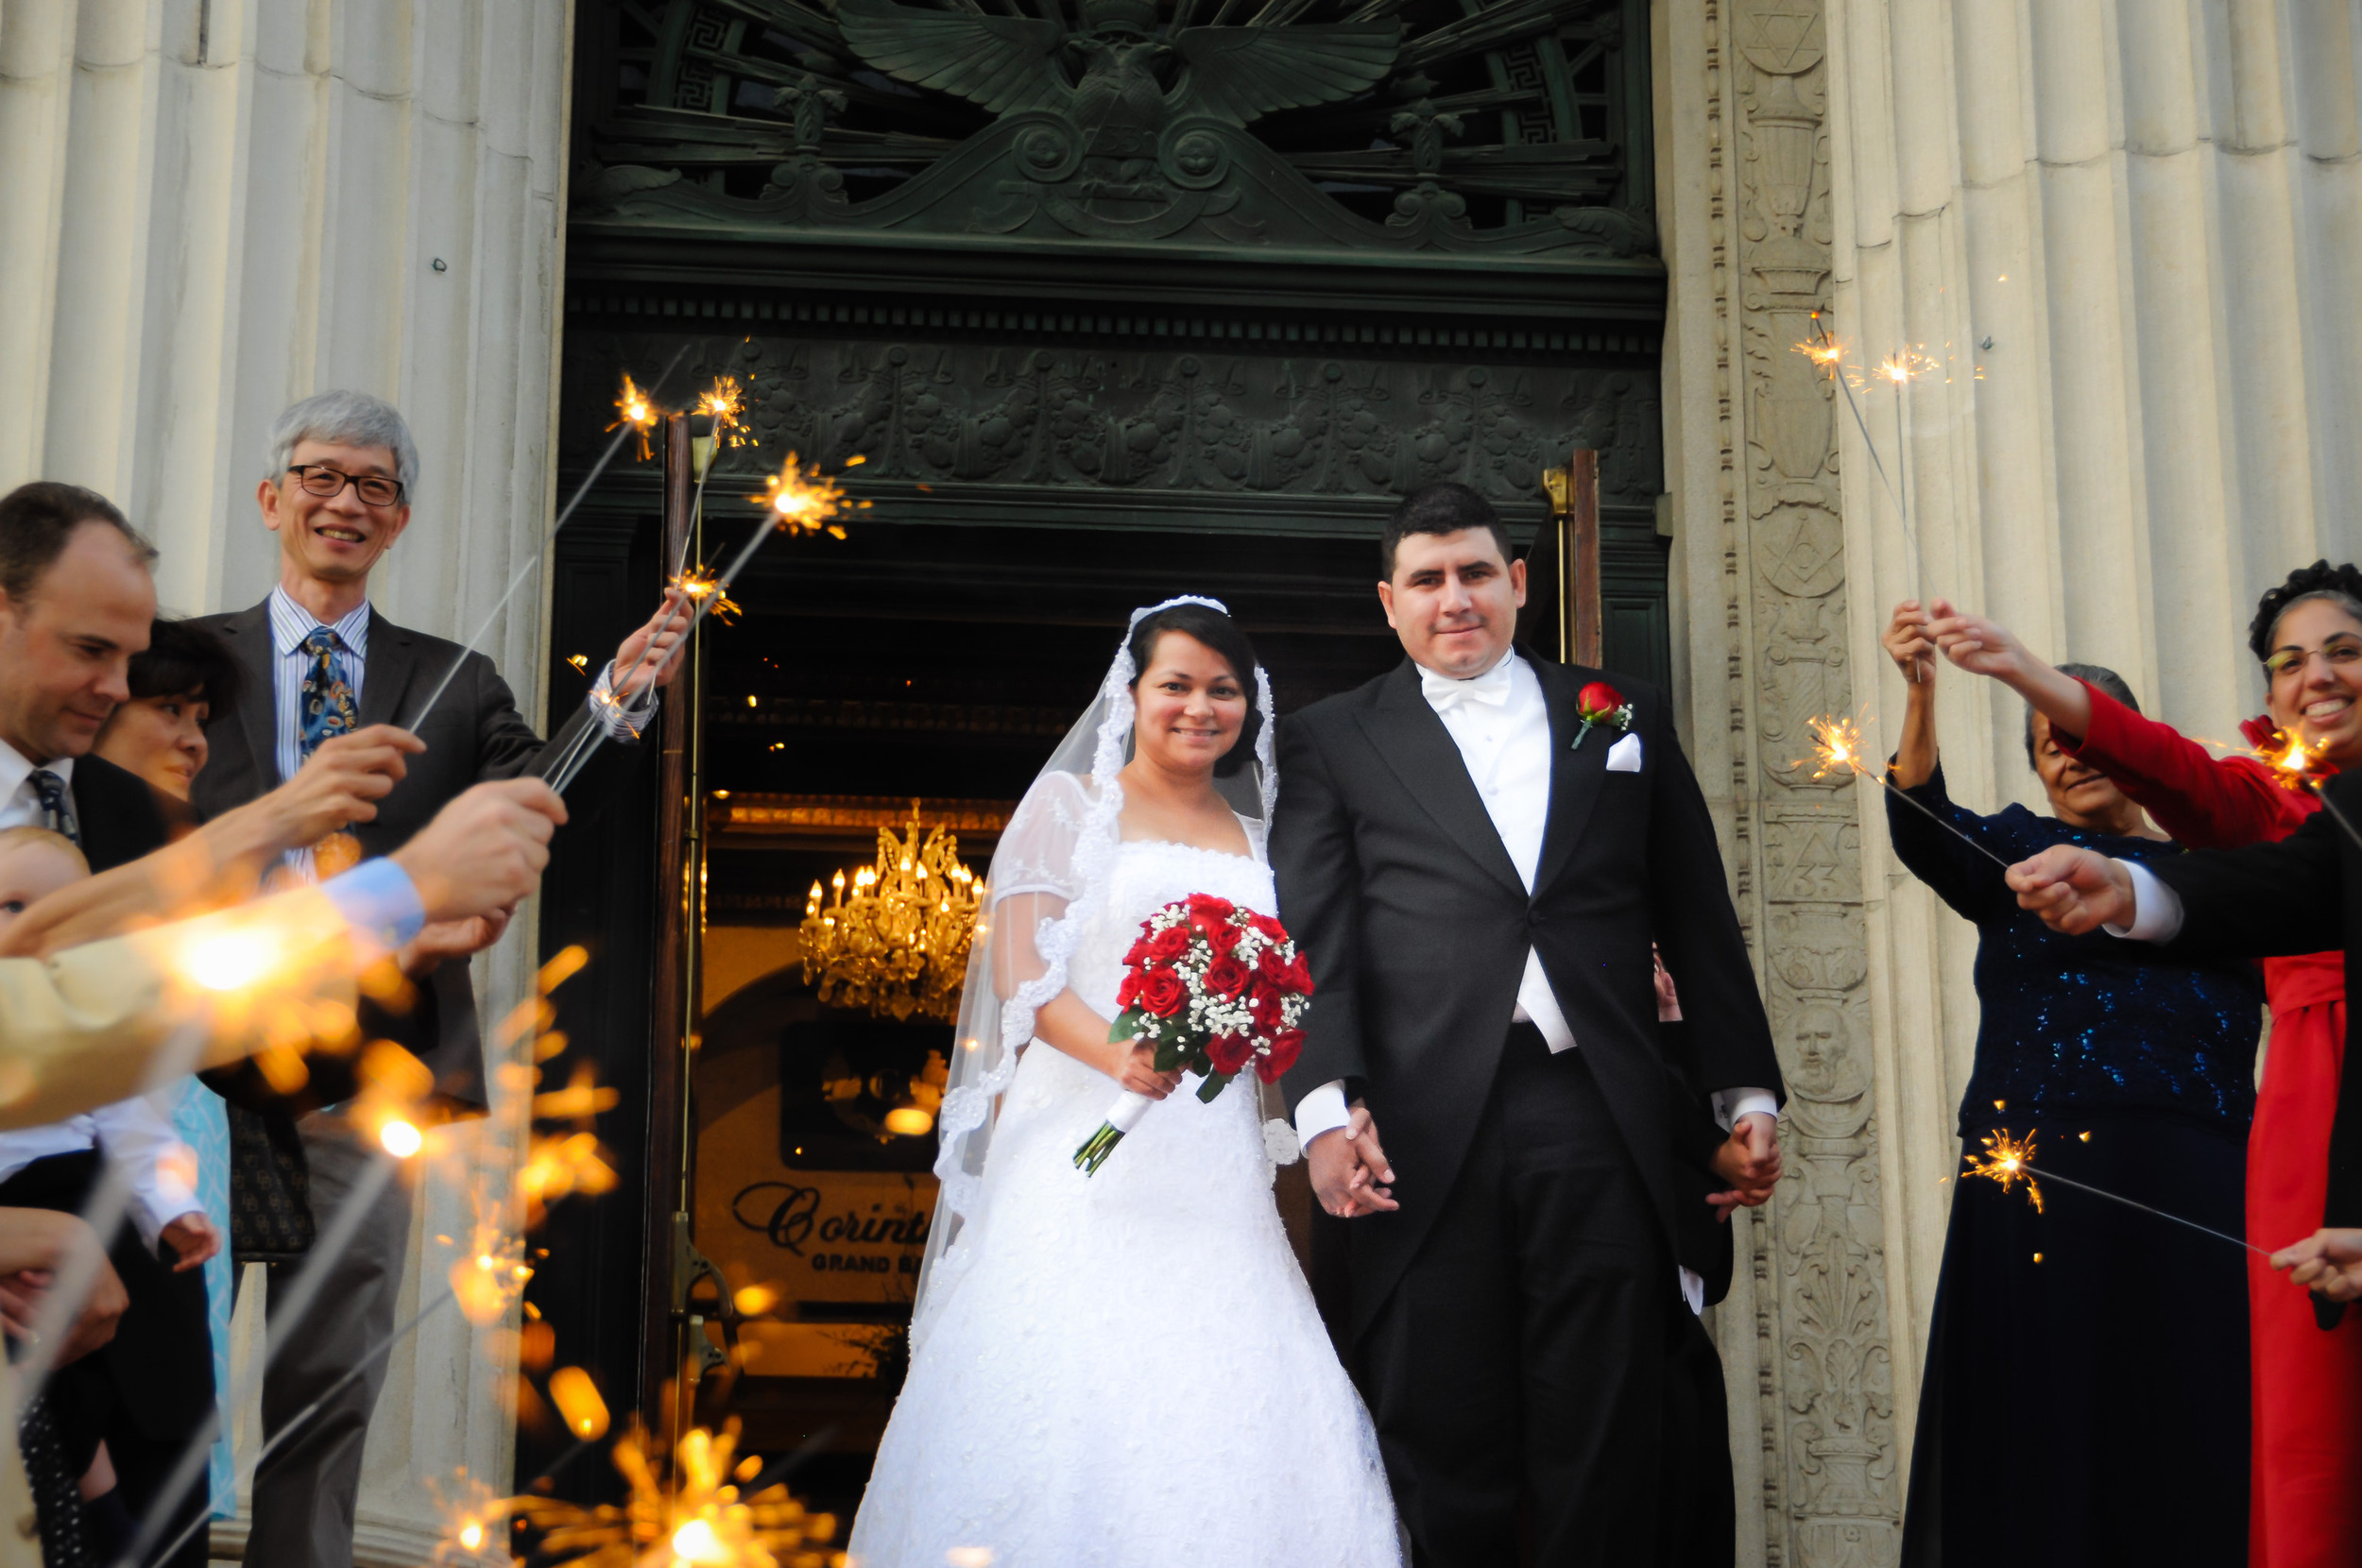 Adrianne & Everardo - Wedding at the Corinthian, San Jose